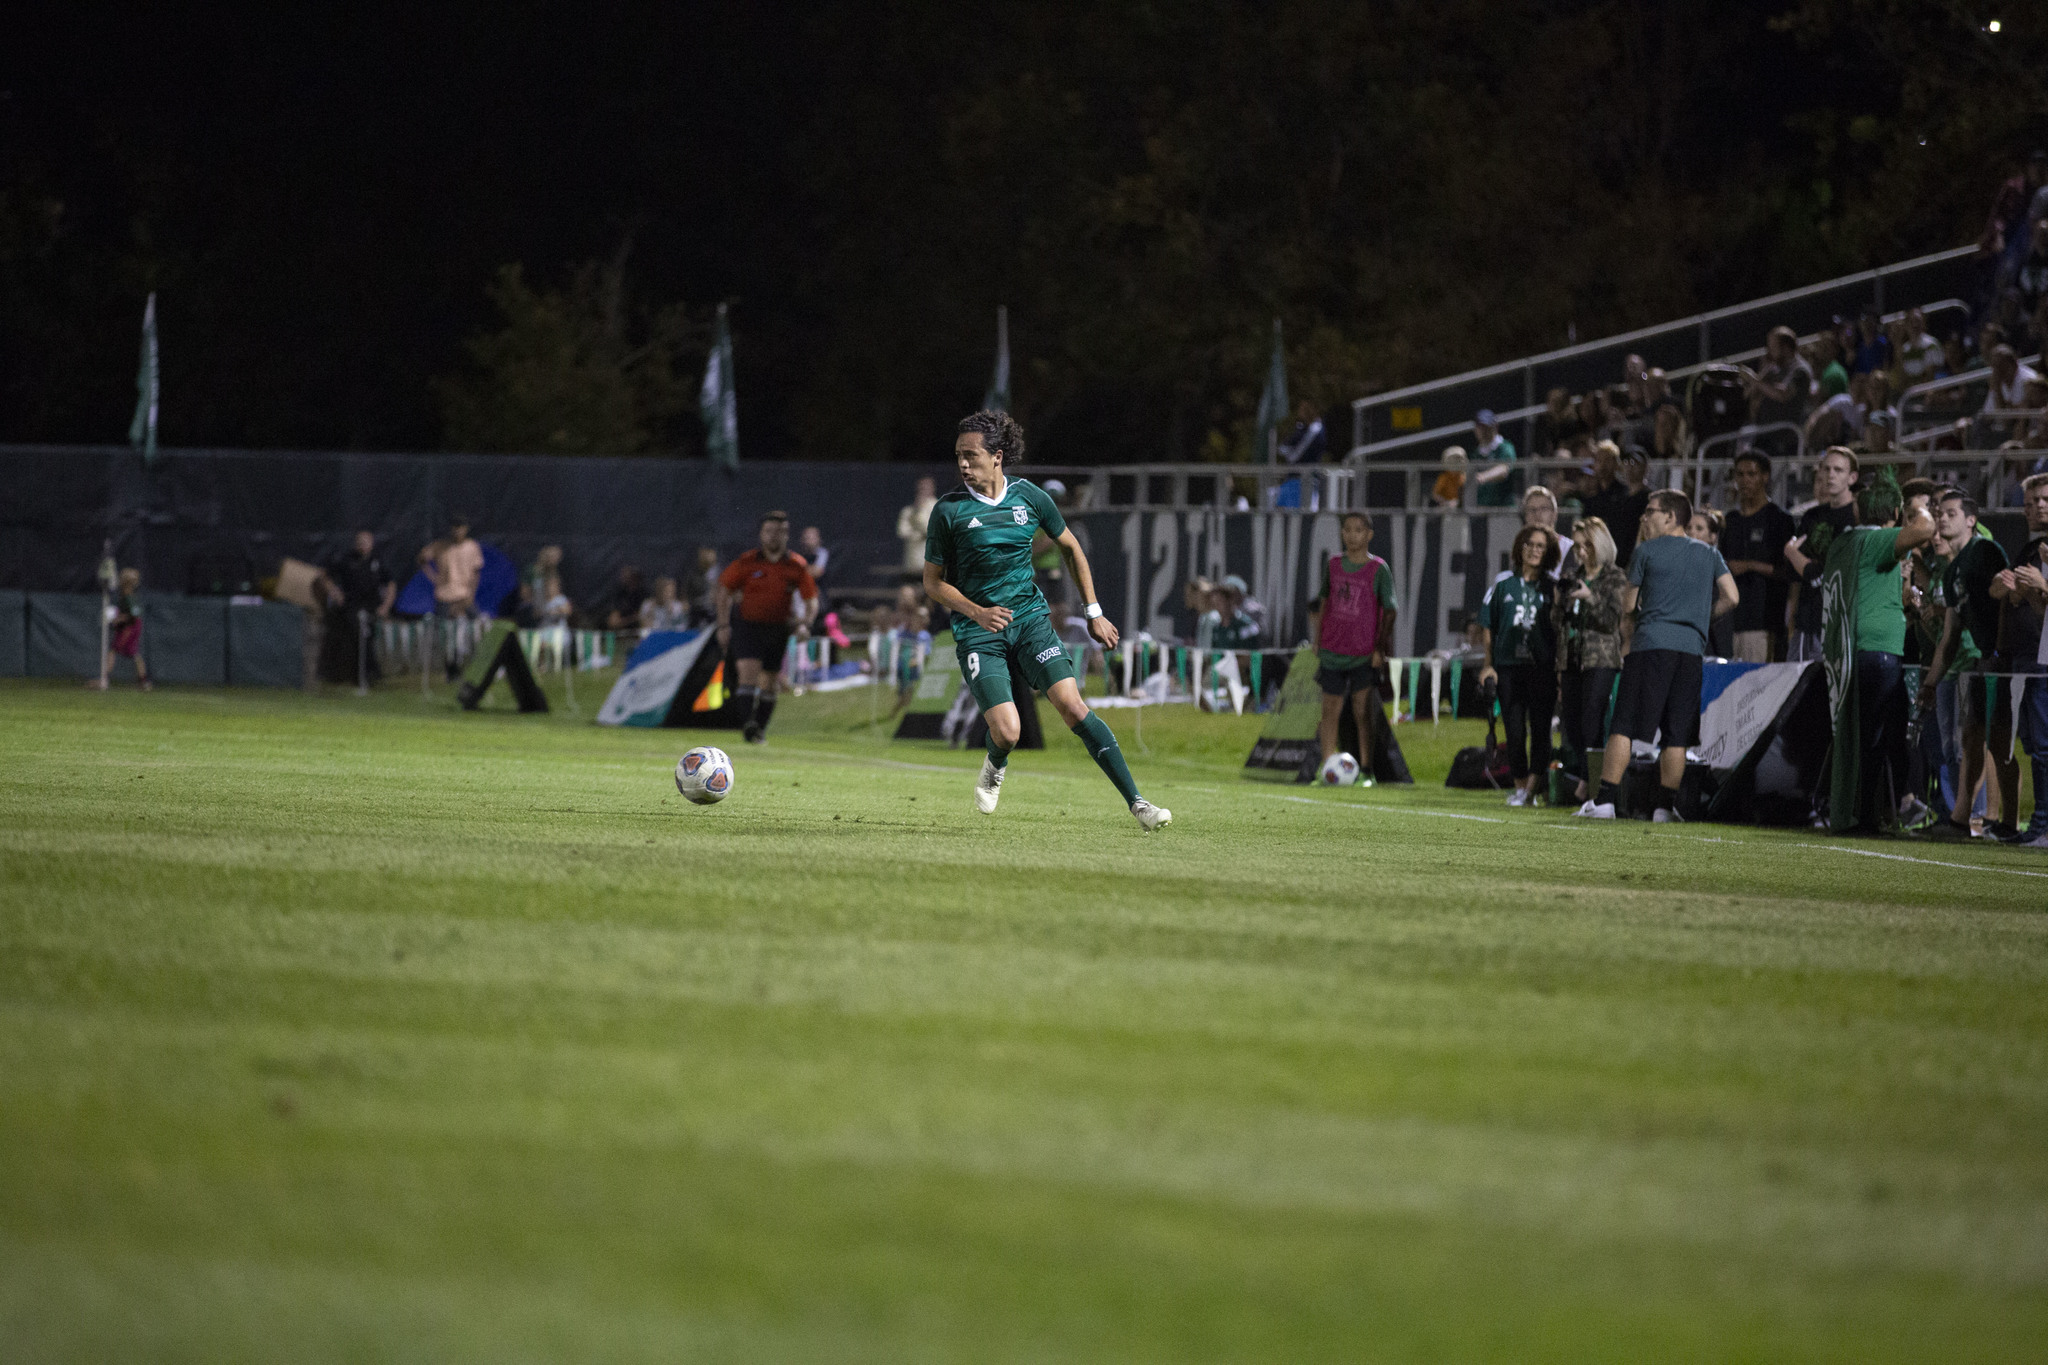 UVU Men's Soccer Gets The Home Win Against UTRGV